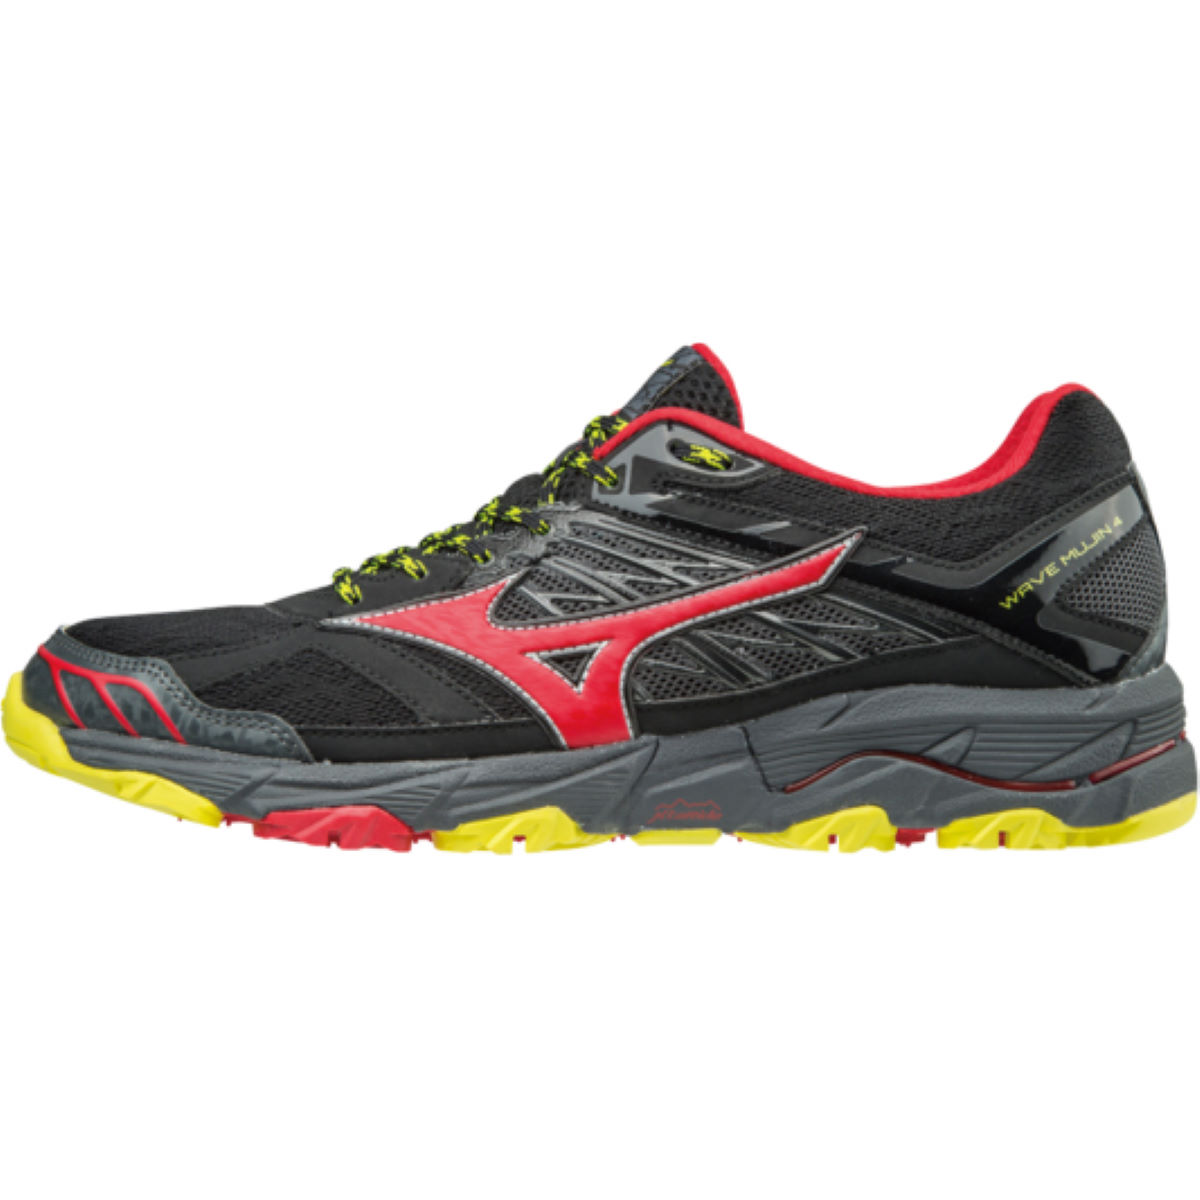 Chaussures Mizuno Wave Mujin 4 - UK 8 Black / Formula One